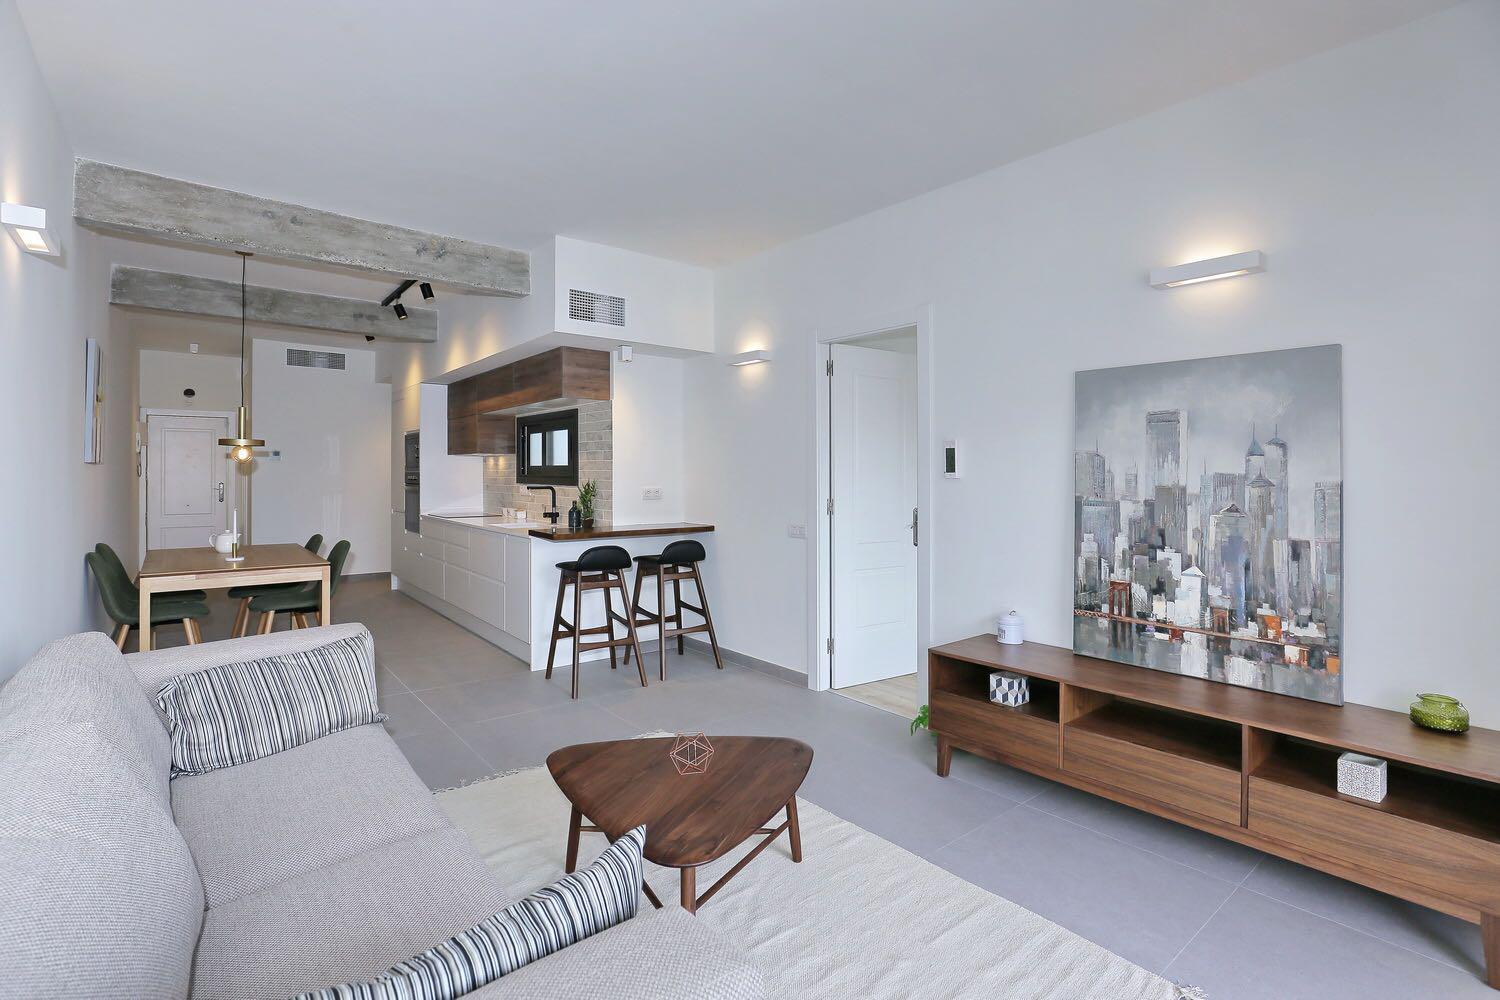 194729 Apartment for sale in Eixample, Old Left Eixample 1